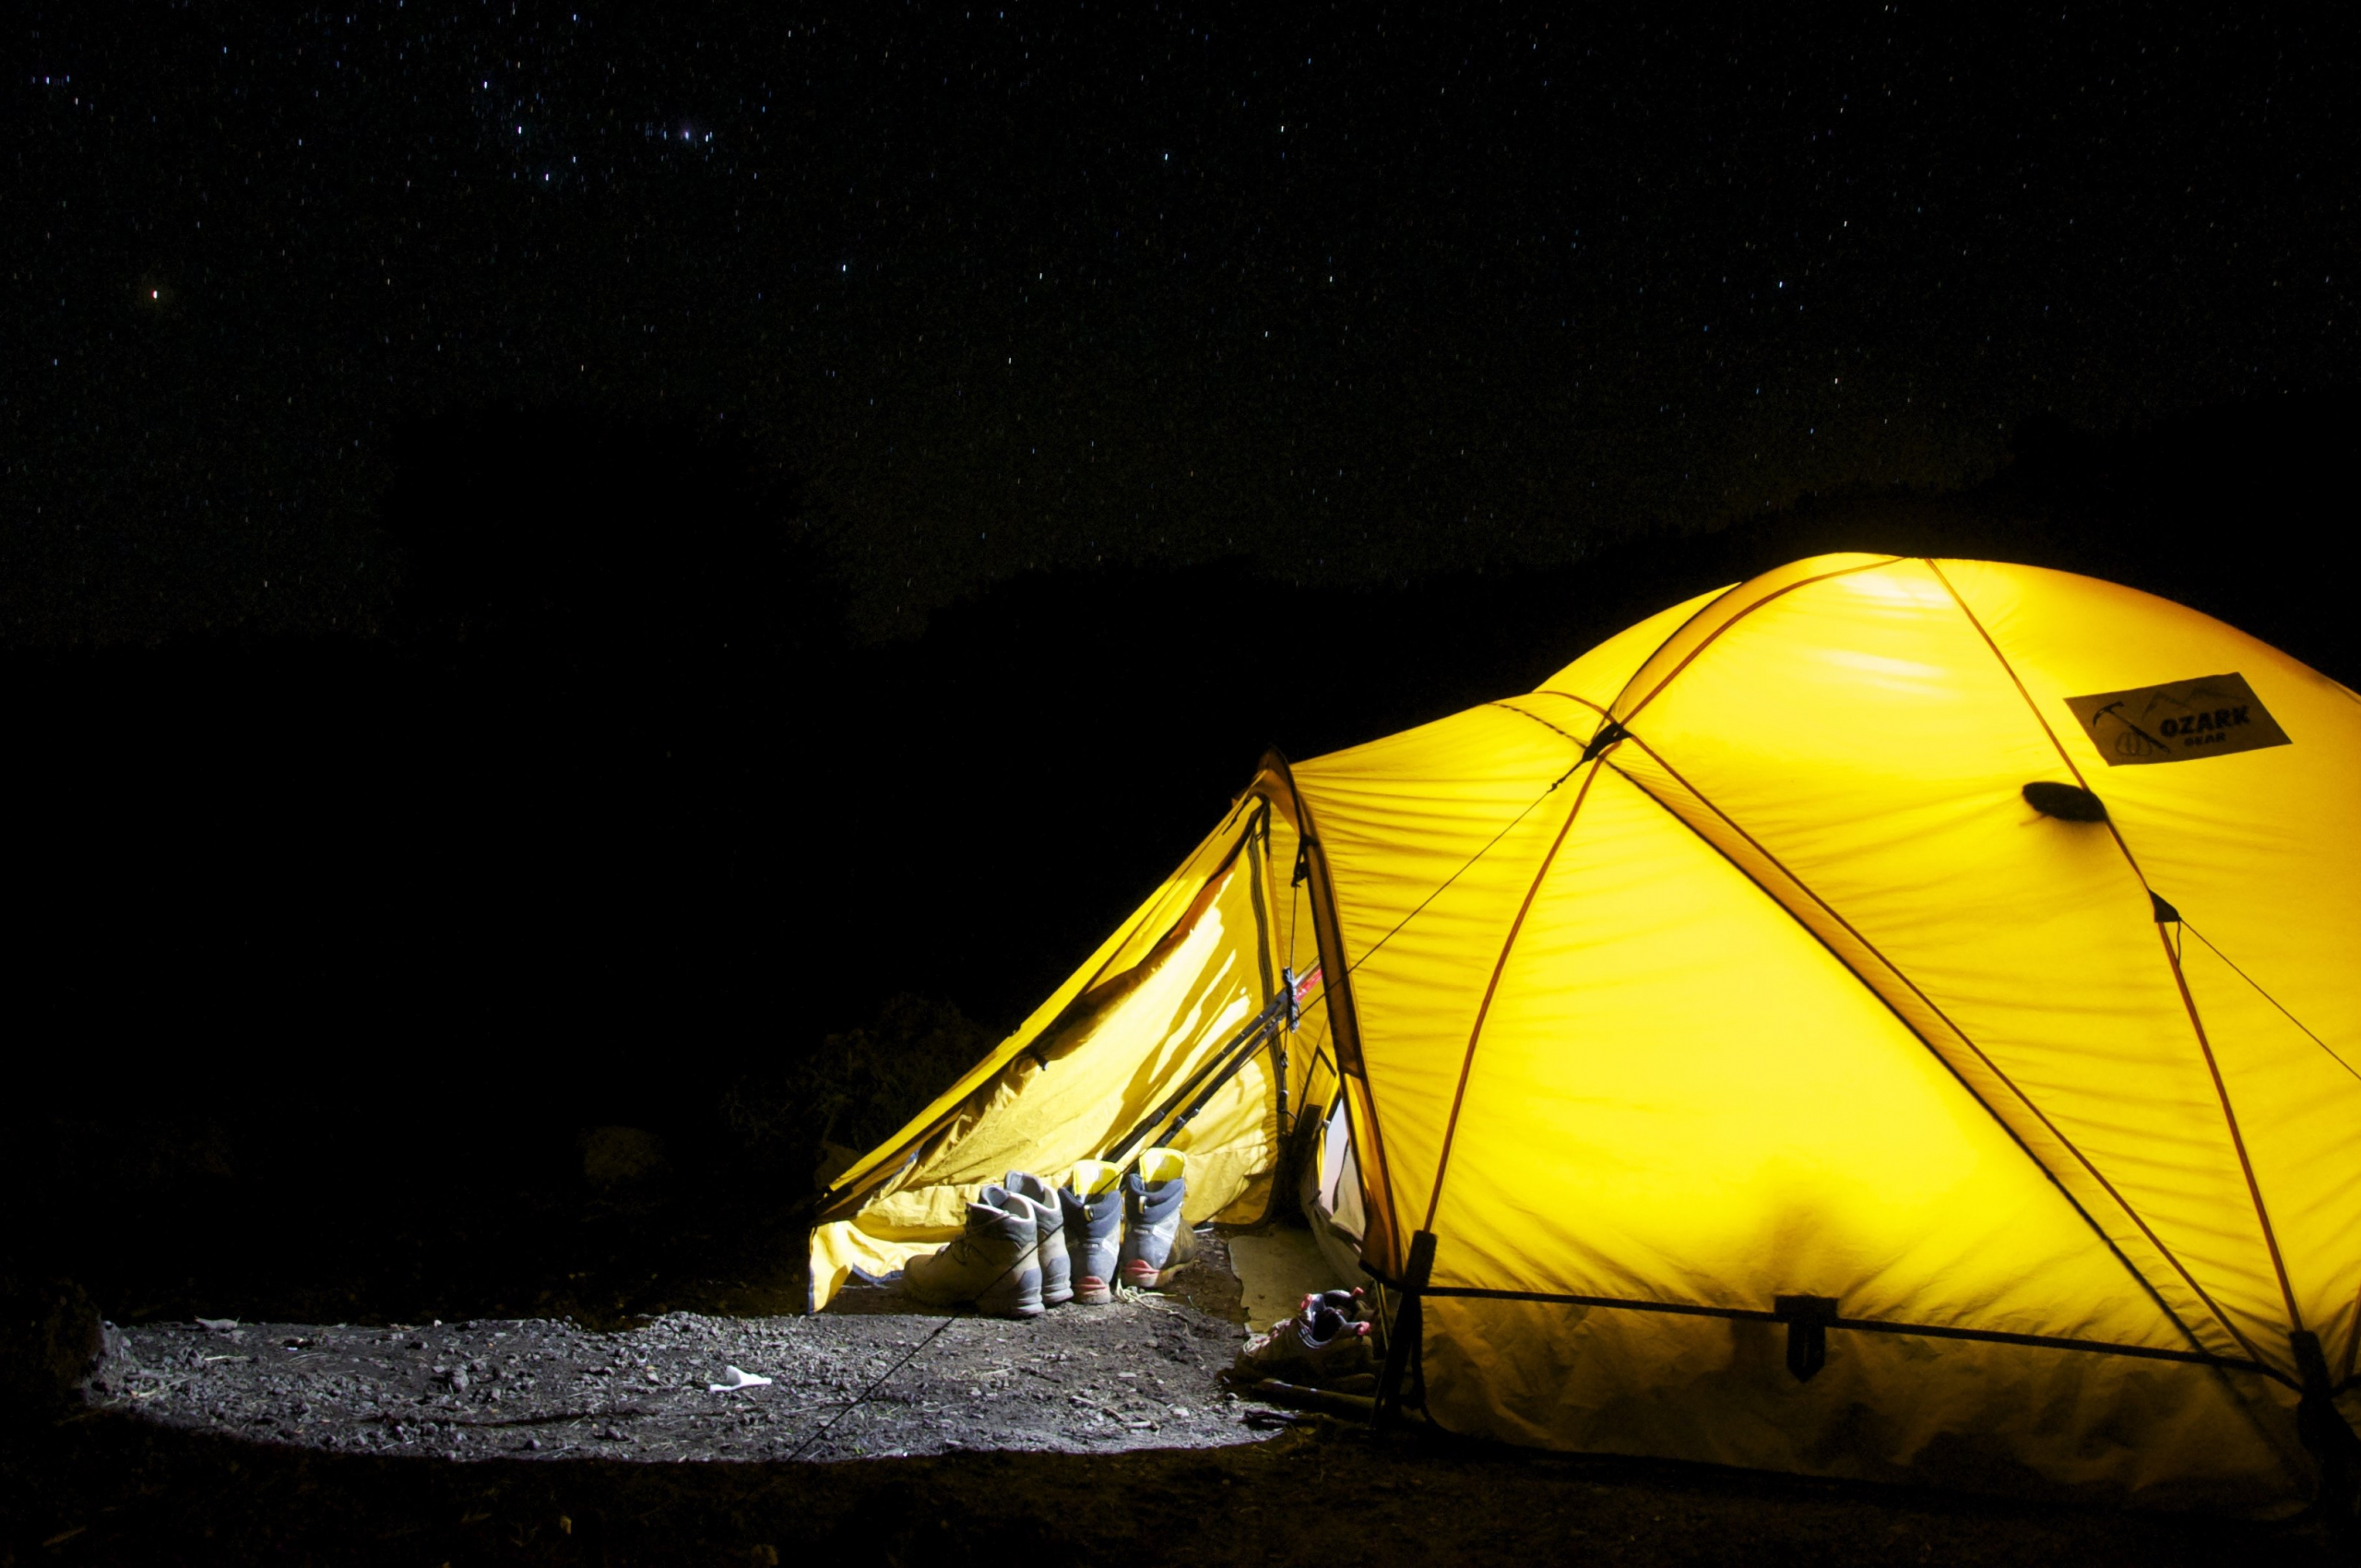 Free download Wallpaper CC0 Camping with tent in the night ...